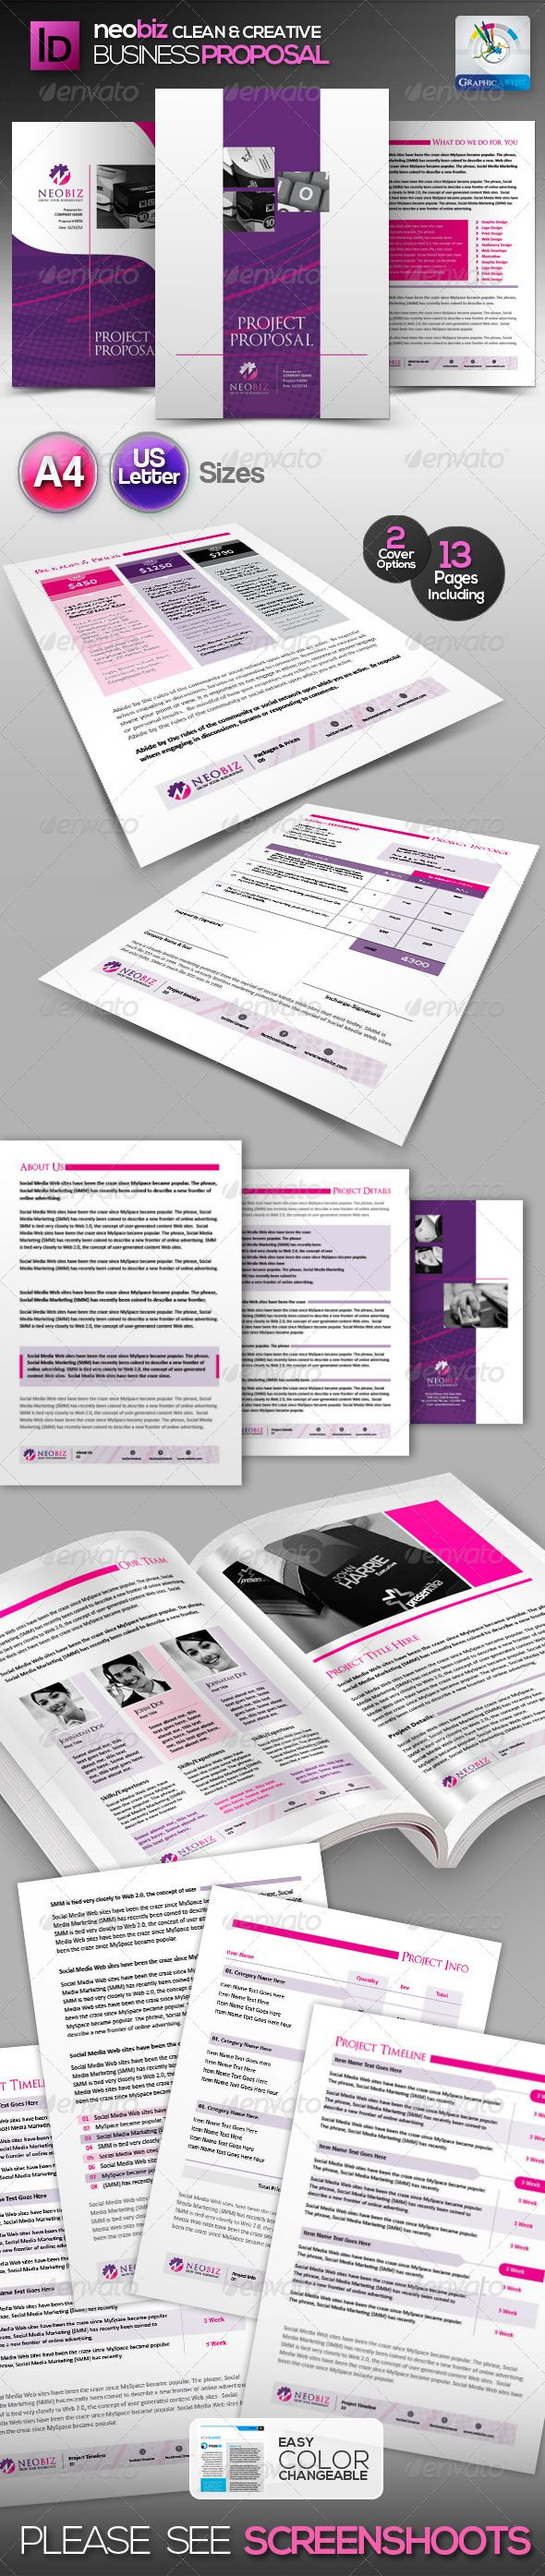 Generic Business Proposal Template Whole Corporate Identity Proposal+  Invoice+ Letter